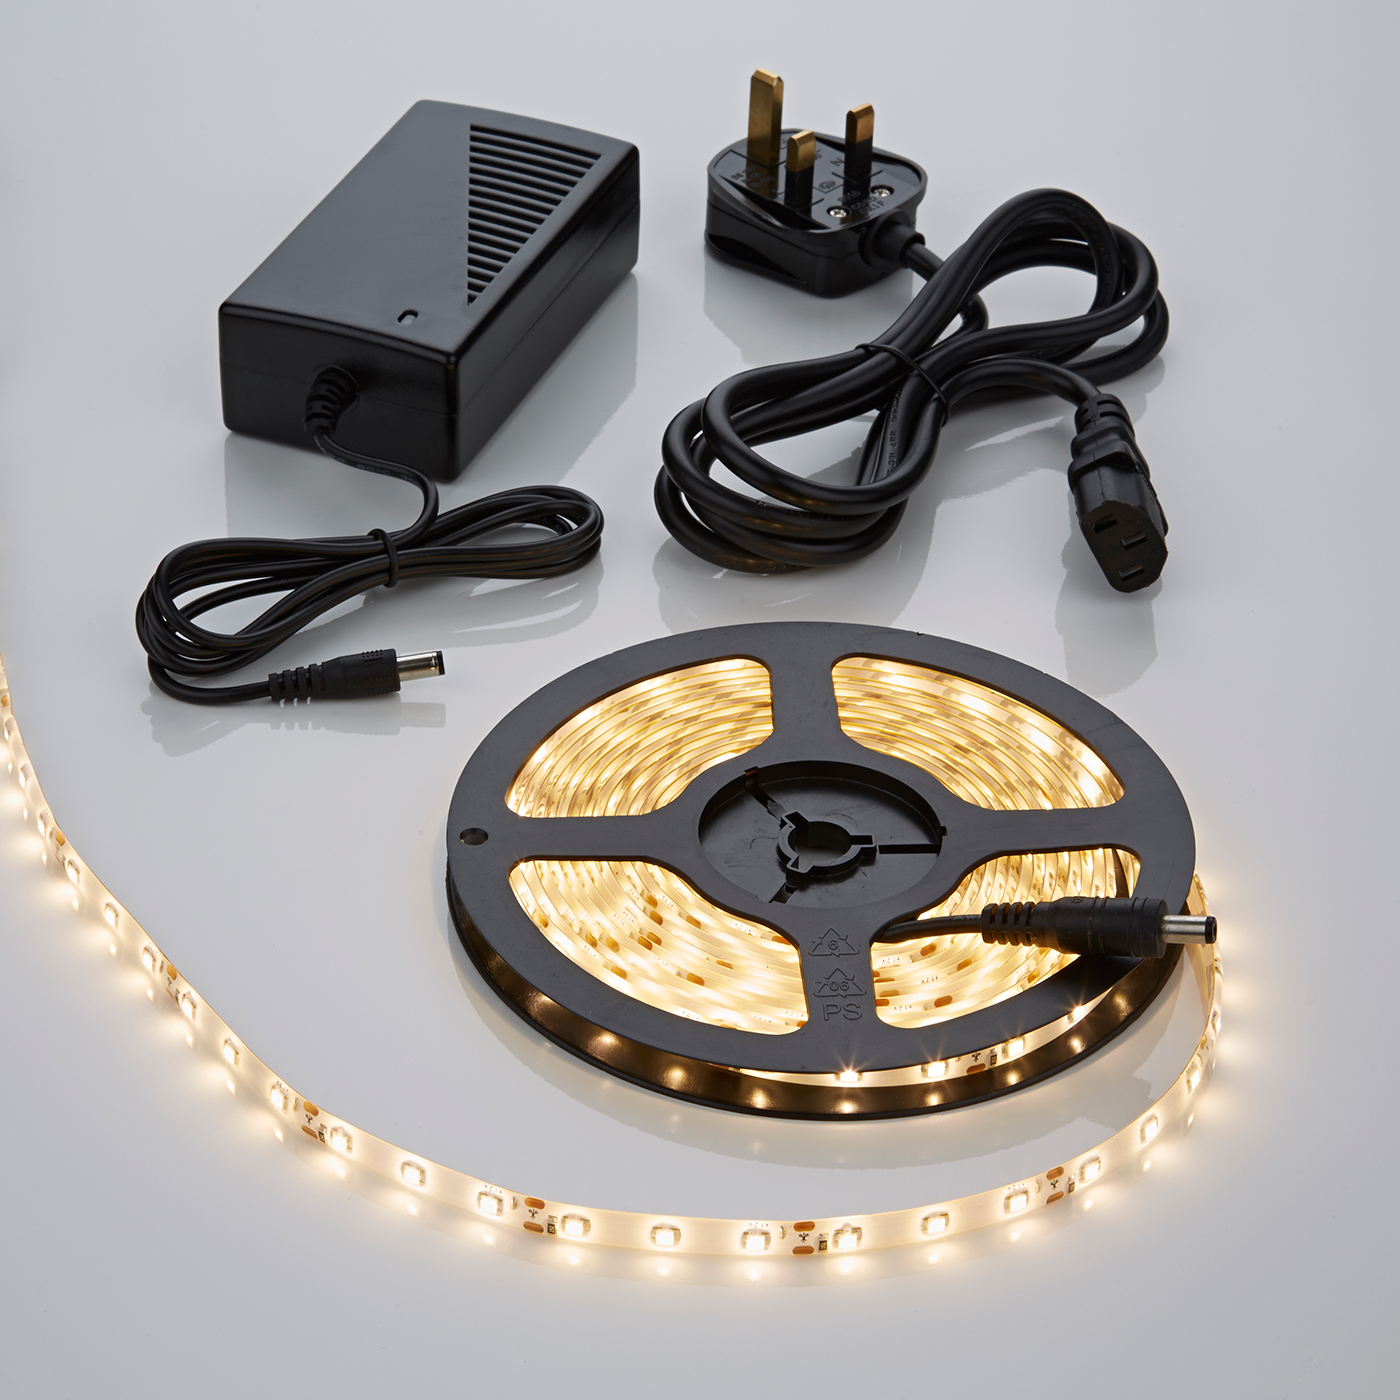 Biard 5 Metre 3528 Warm White Waterproof LED Strip Light Kit with Power Supply - 300 LEDs